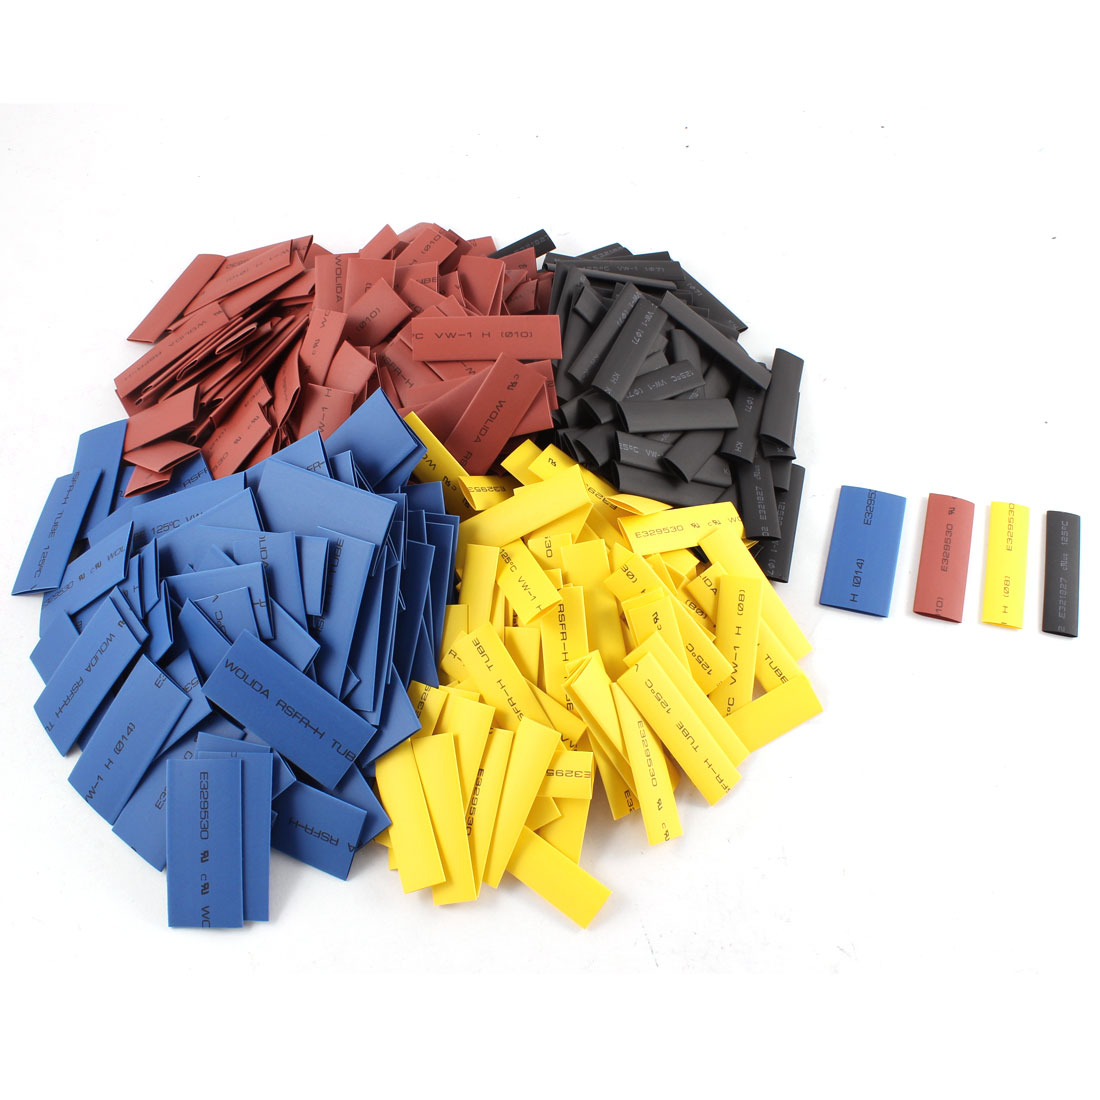 400pcs 2:1 Heat Shrink Tubing Shrinkable Tube Insulated Pipe Sleeving Cable Cover Wrap 50mm Long 4 Sizes